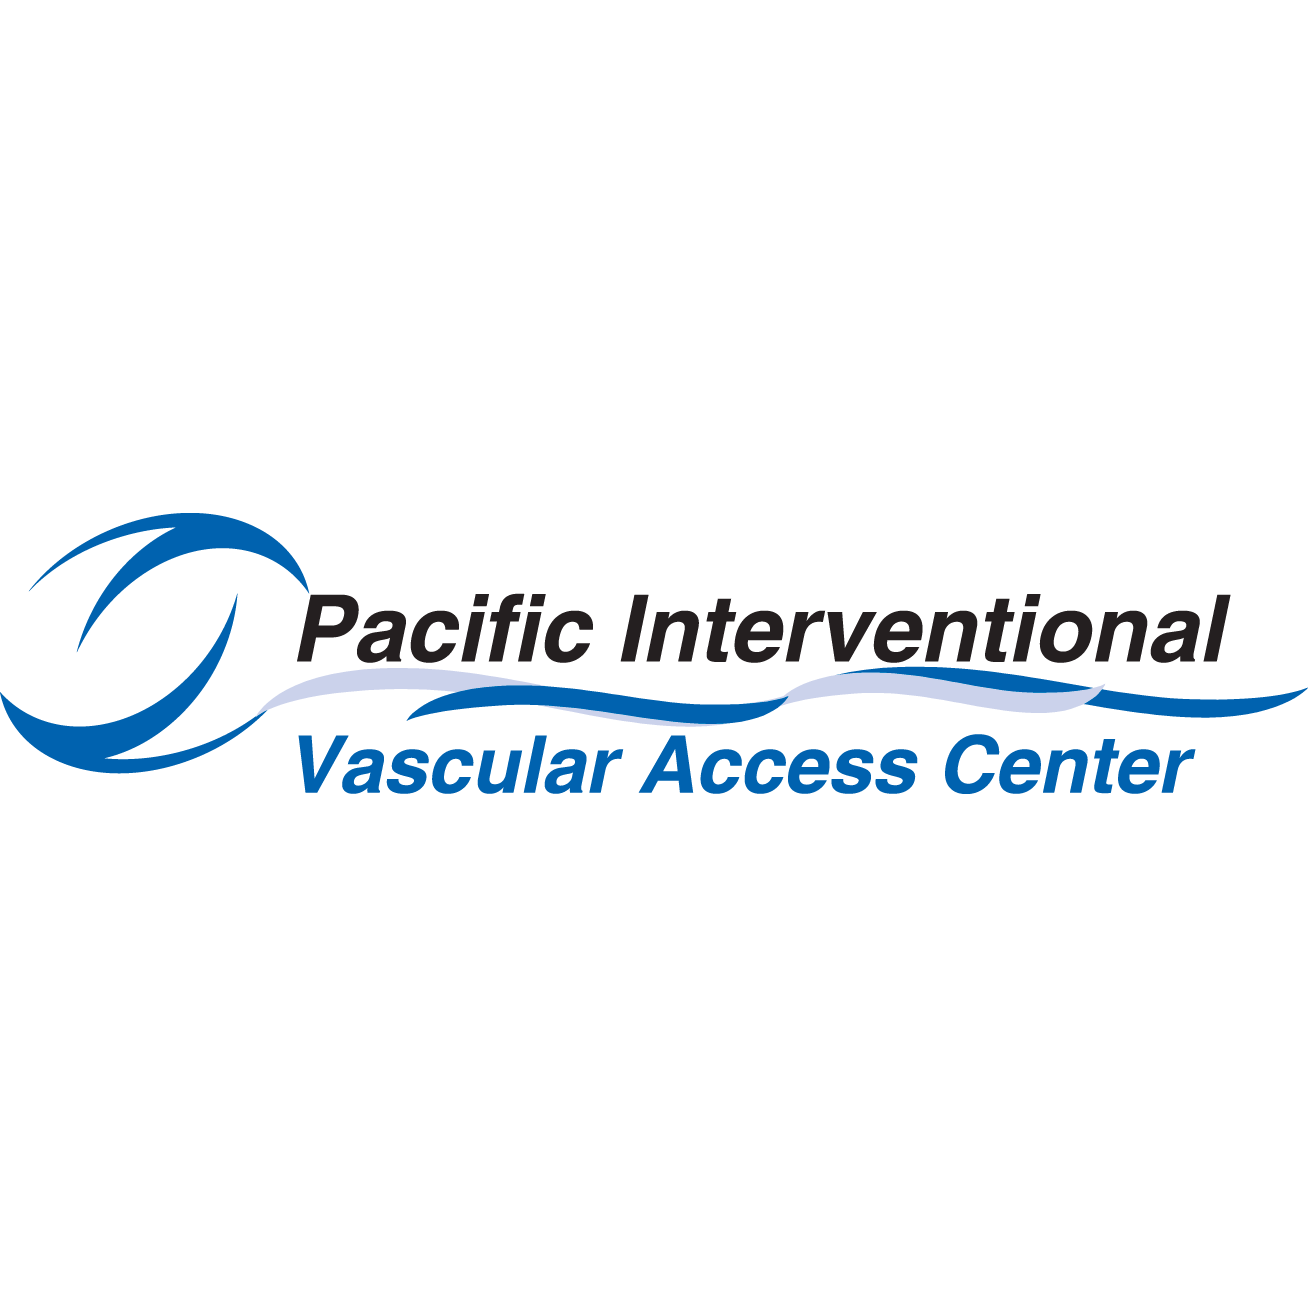 Pacific Interventional Vascular Access Center